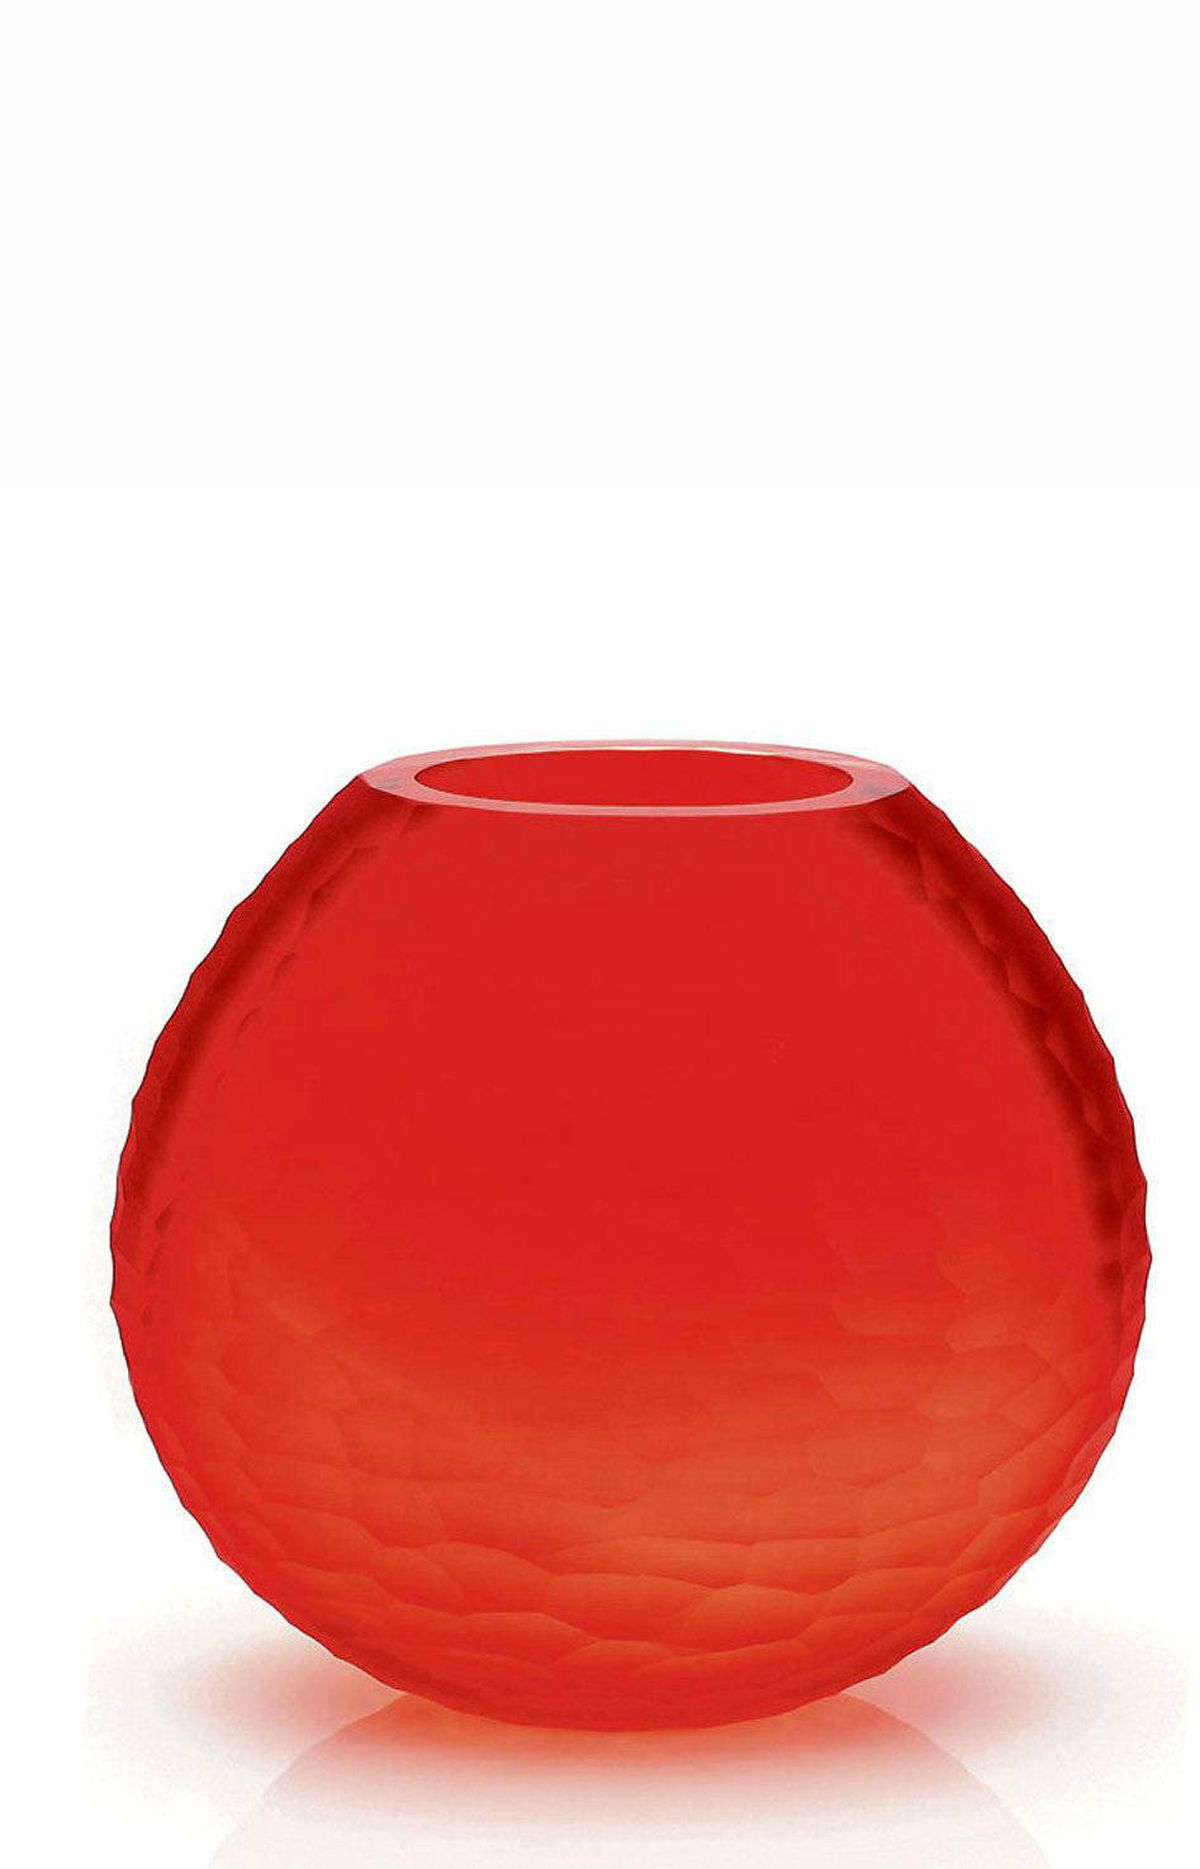 CREATE ARTFUL VIGNETTES Use tangerine when dressing a mantel or coffee table. This sculpted Murano glass vase from the Secret Dawn collection at Birks, rendered in various shades of red and orange, adds a brilliant hand-hewn pop, with or without blooms.